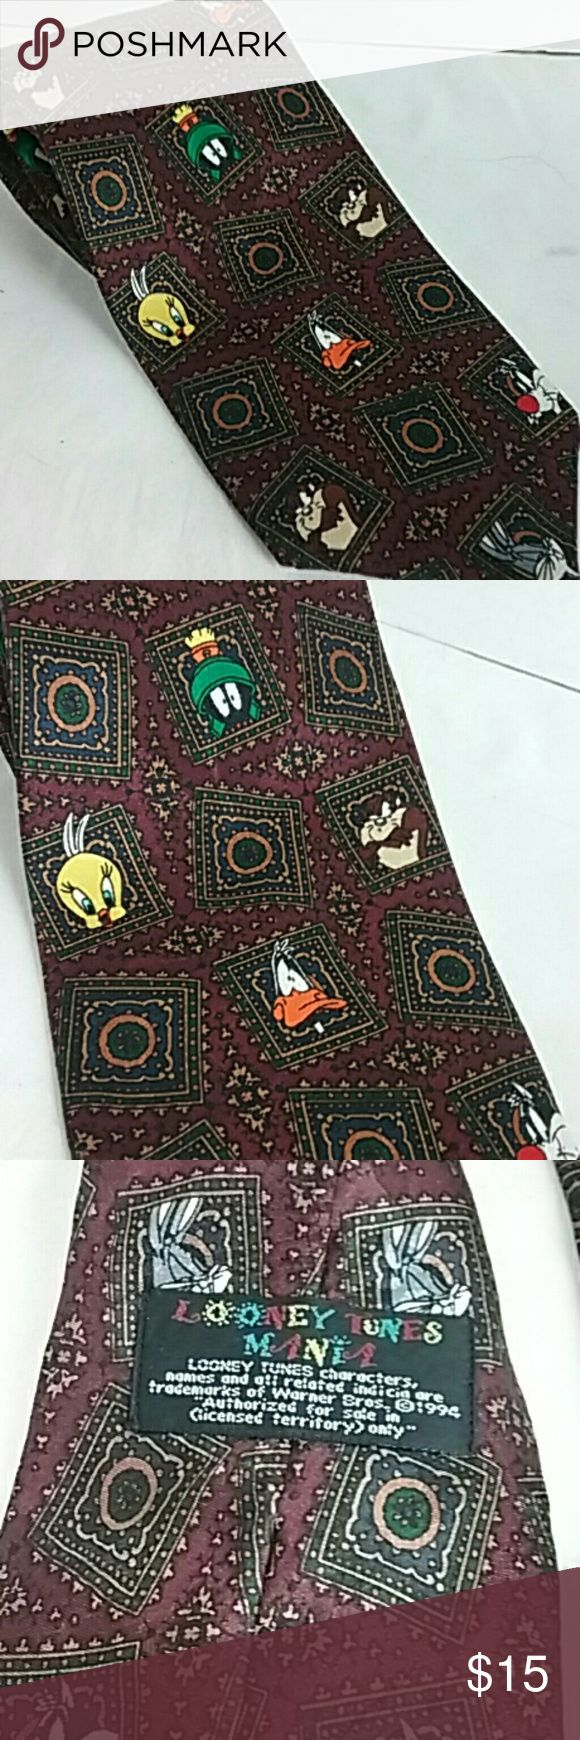 Looney Tunes Burgundy Tie Bugs Marvin Taz Tweety Looney Tunes themed burgundy tie with Kaz Bugs Bunny Tweety Bird Marvin the Martian and Daffy Duck. 100 % polyester. Excellent previously owned condition no rips stains or tears. Looney Tunes Accessories Ties